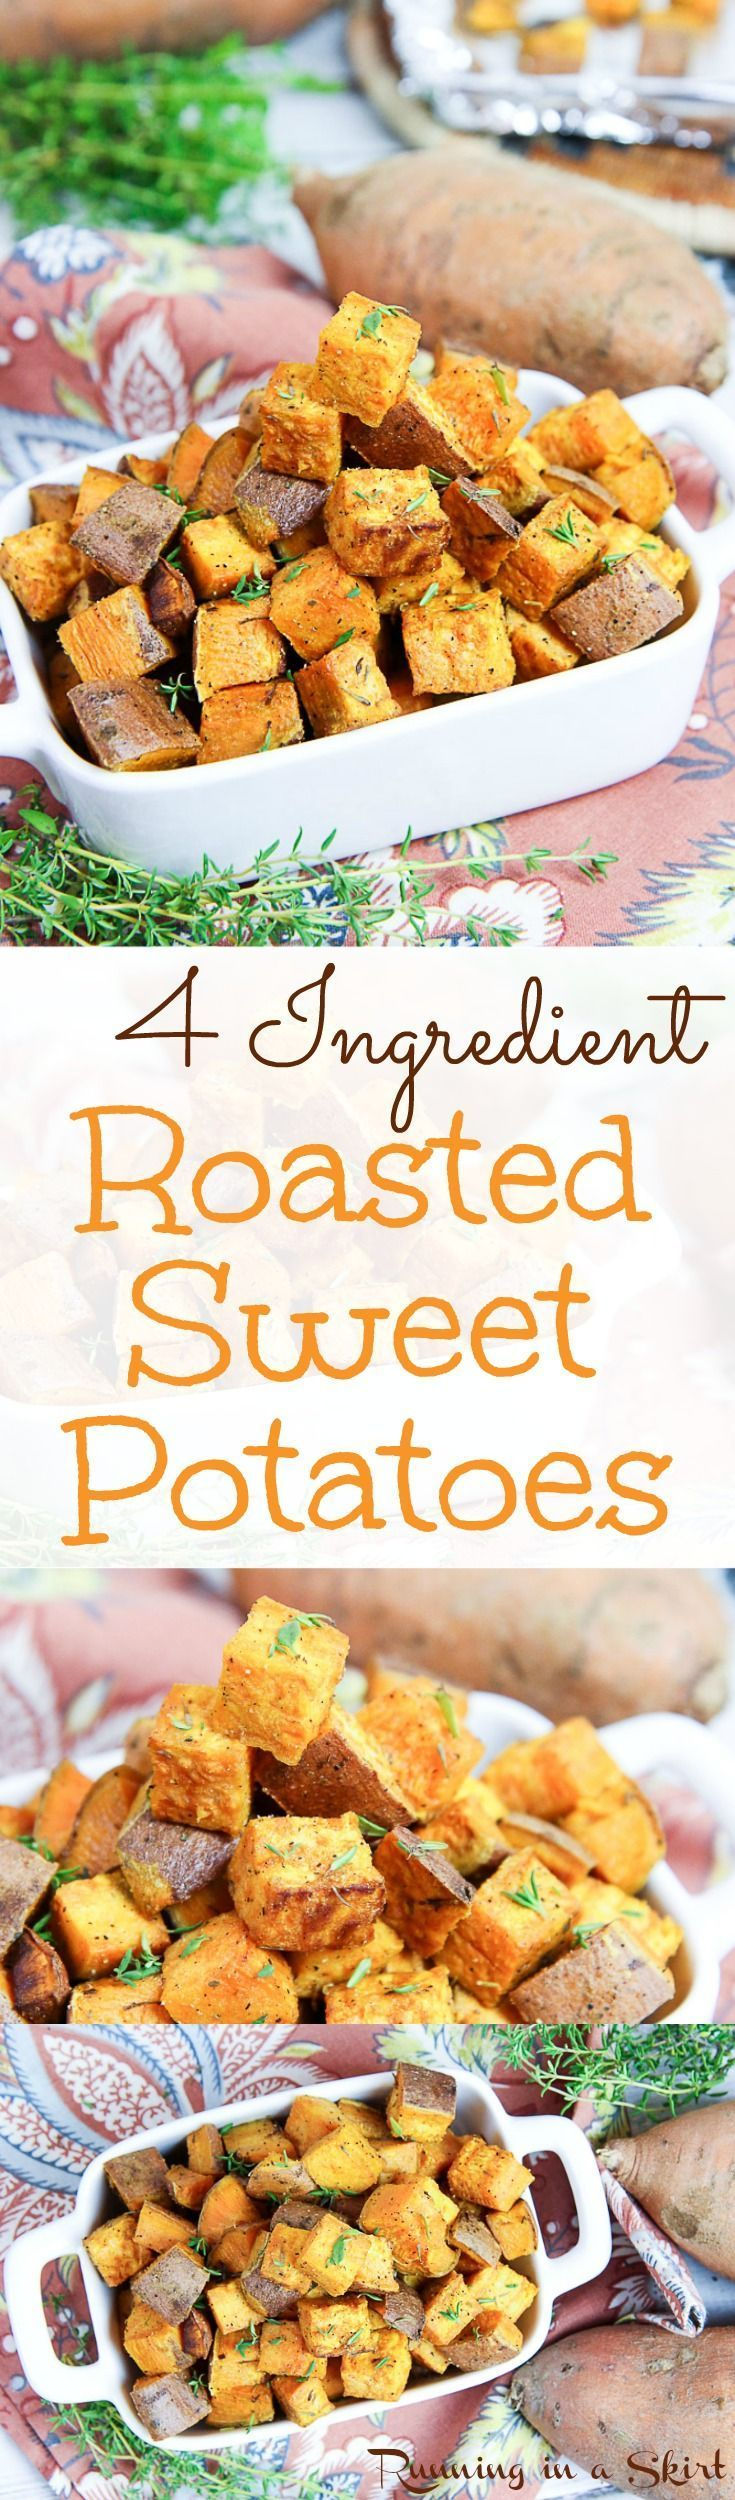 Healthy Roasted Sweet Potato Bites recipe. The best oven roasted ...